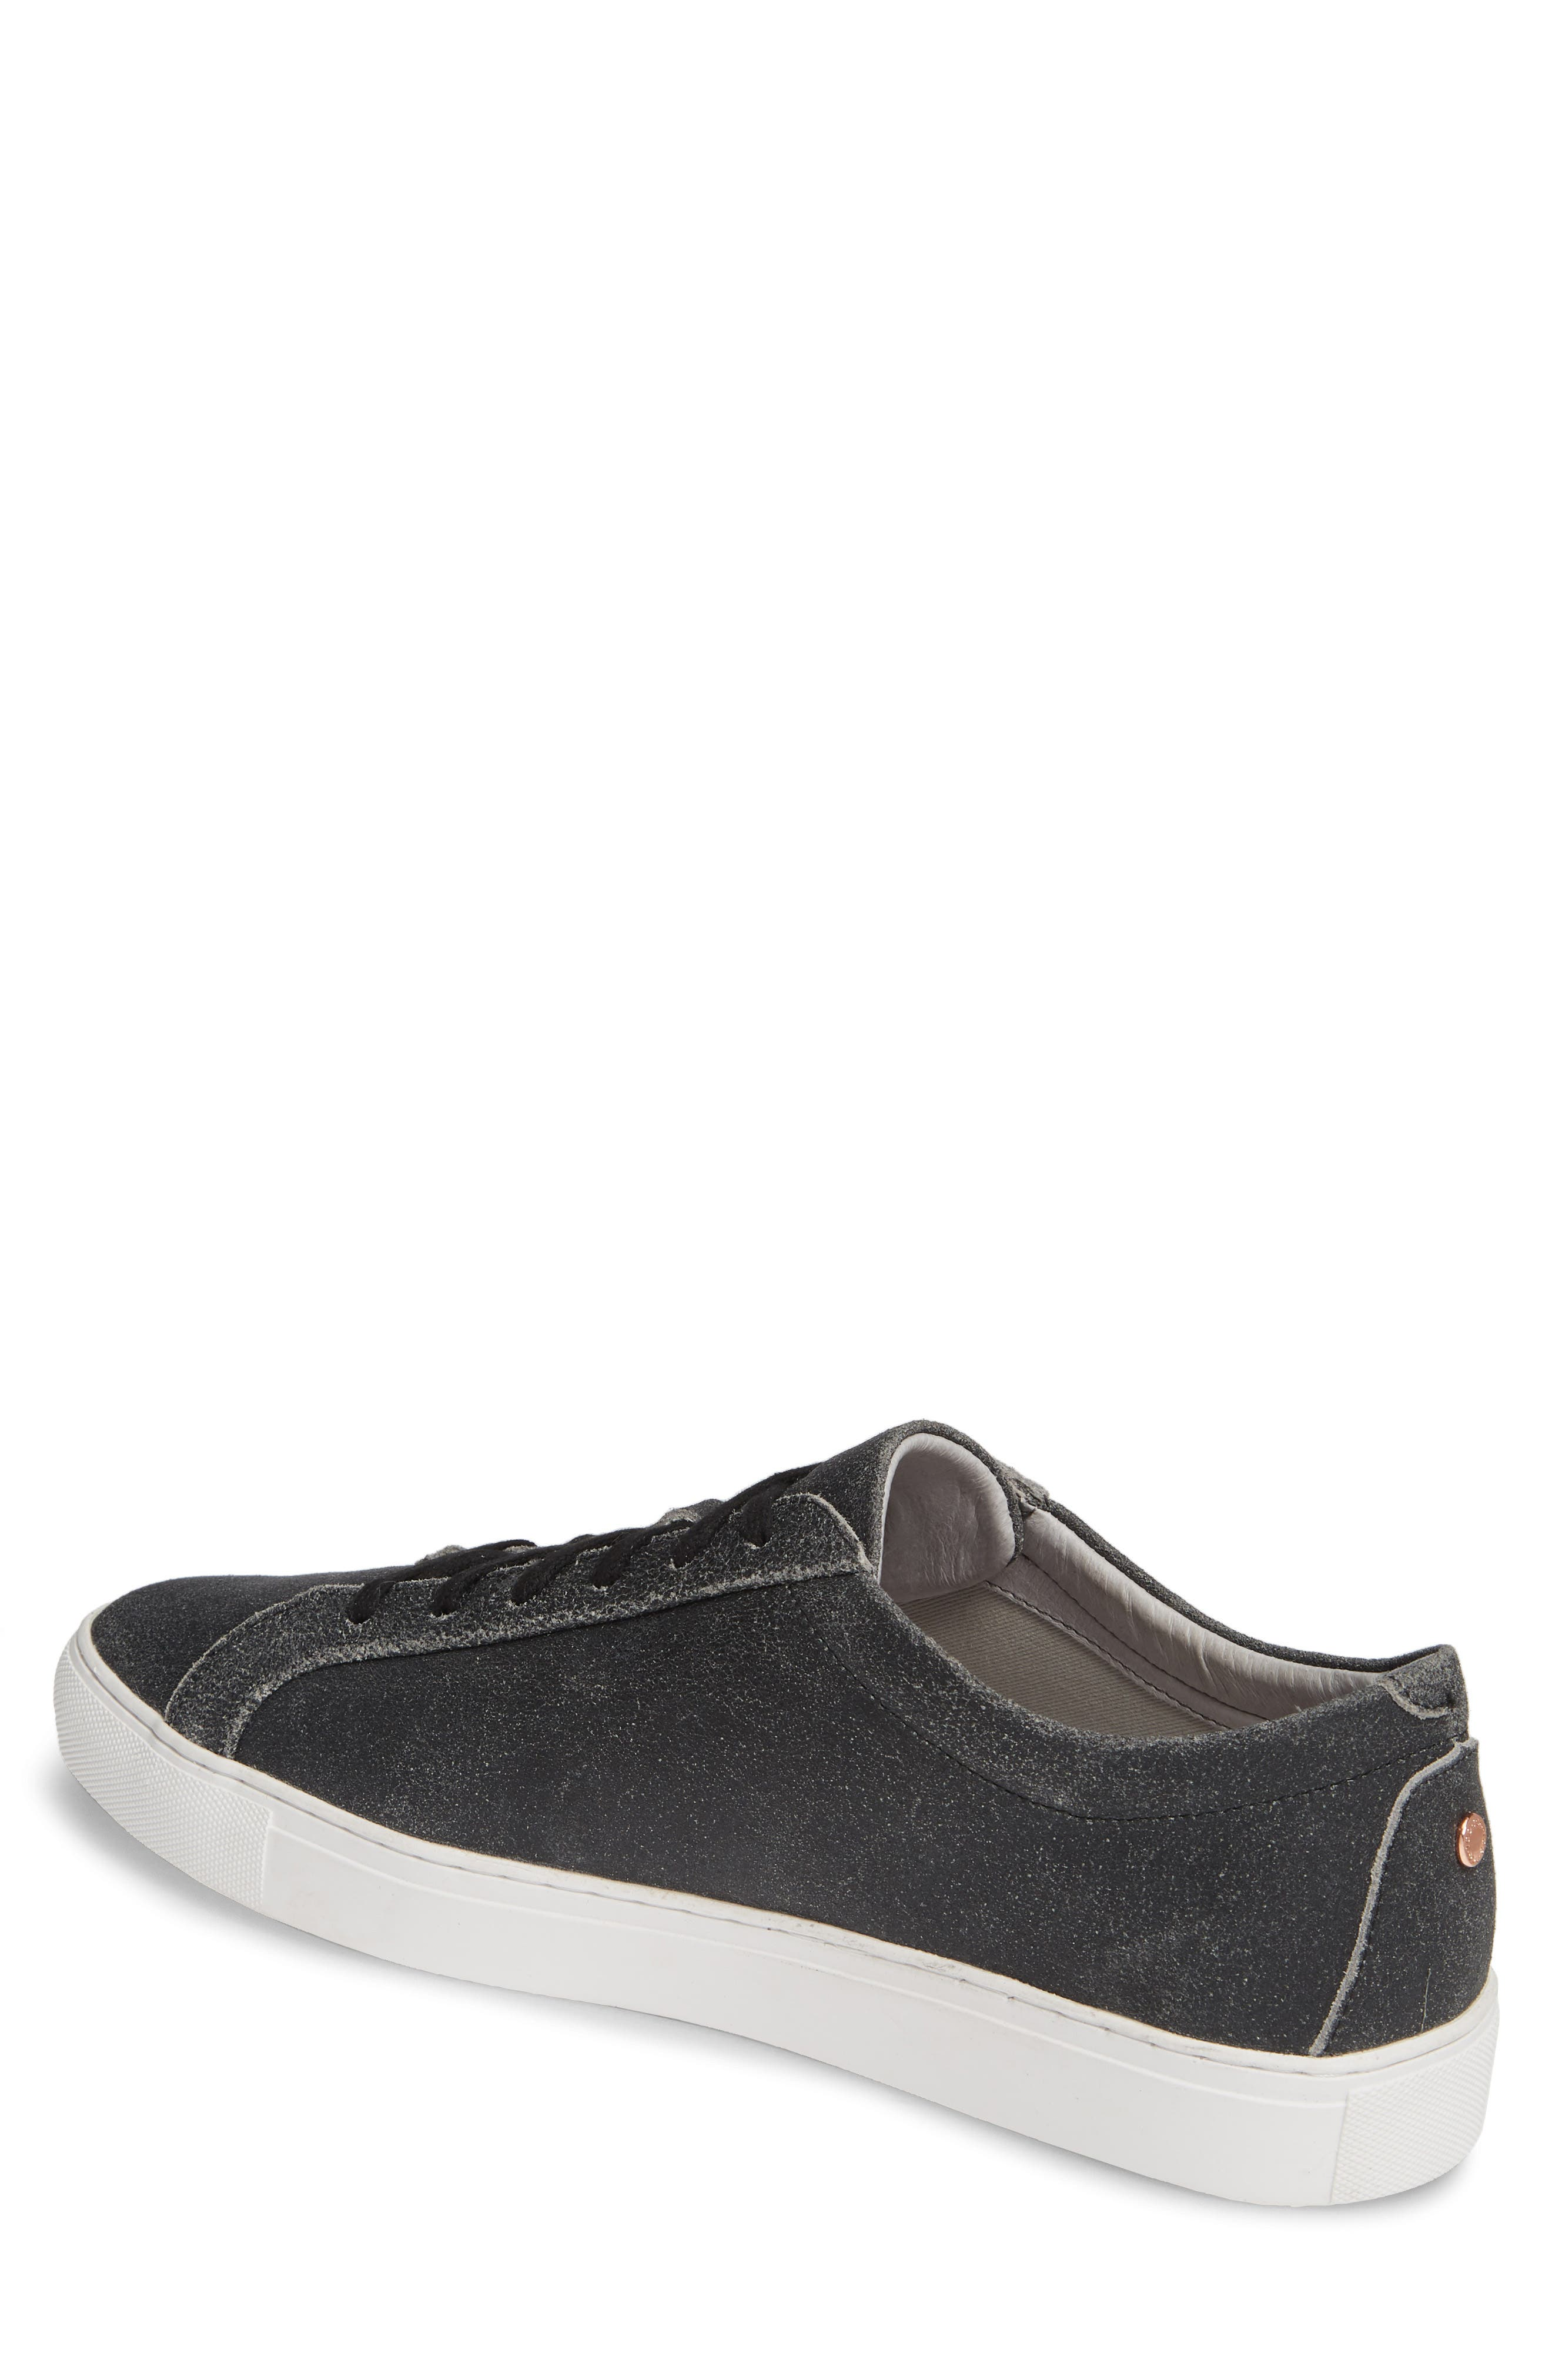 TCG, Kennedy Low Top Sneaker, Alternate thumbnail 2, color, CRACKED BLACK LEATHER